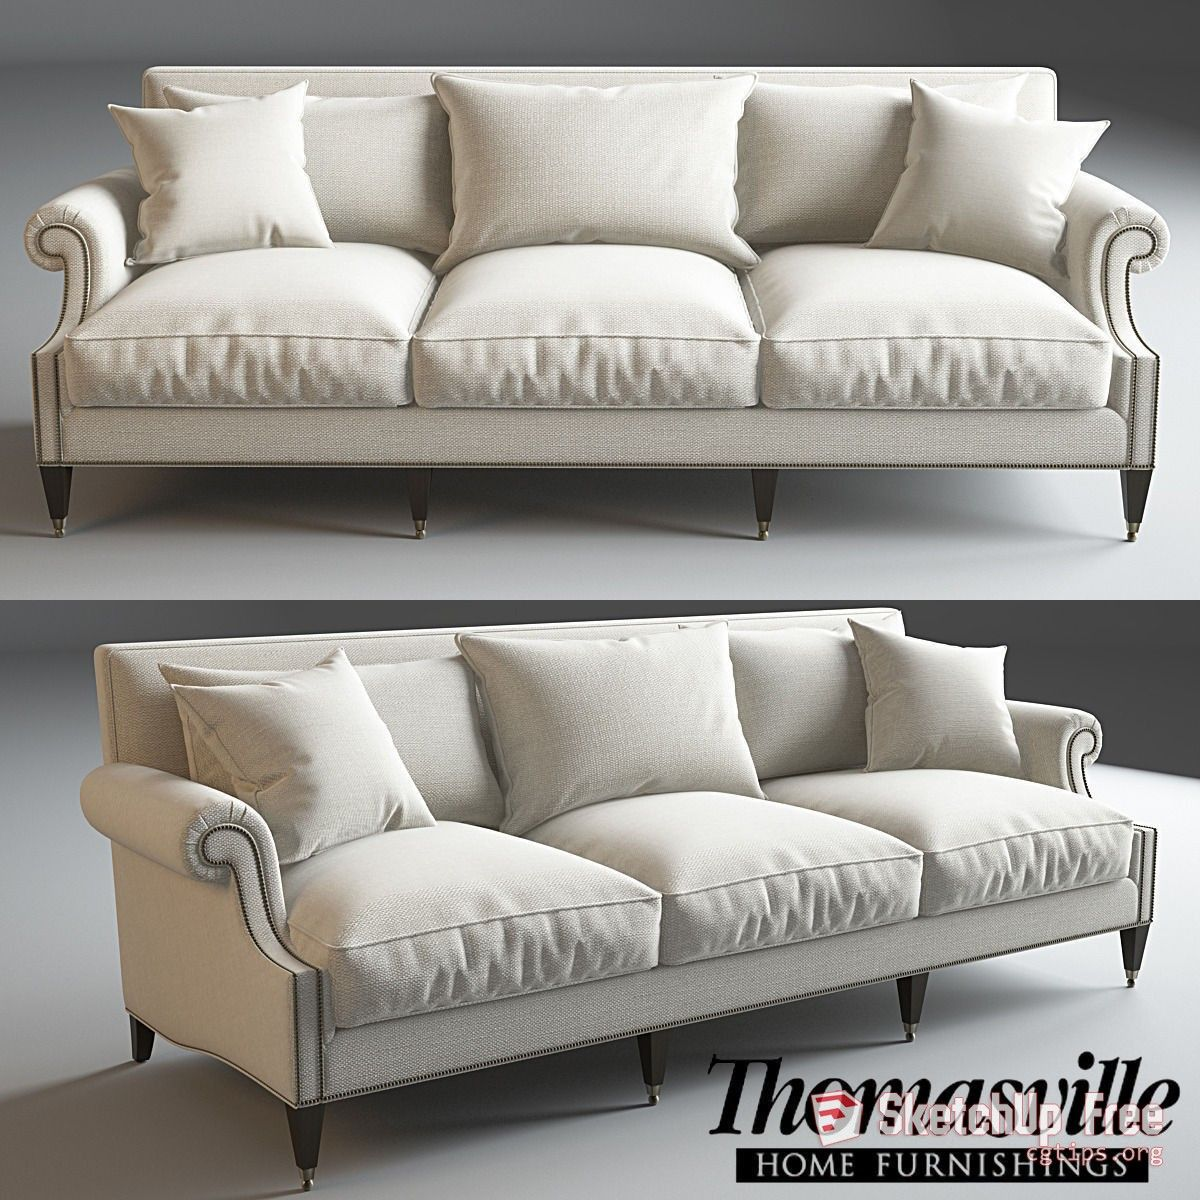 1948 Sofa Sketchup Model Free Download